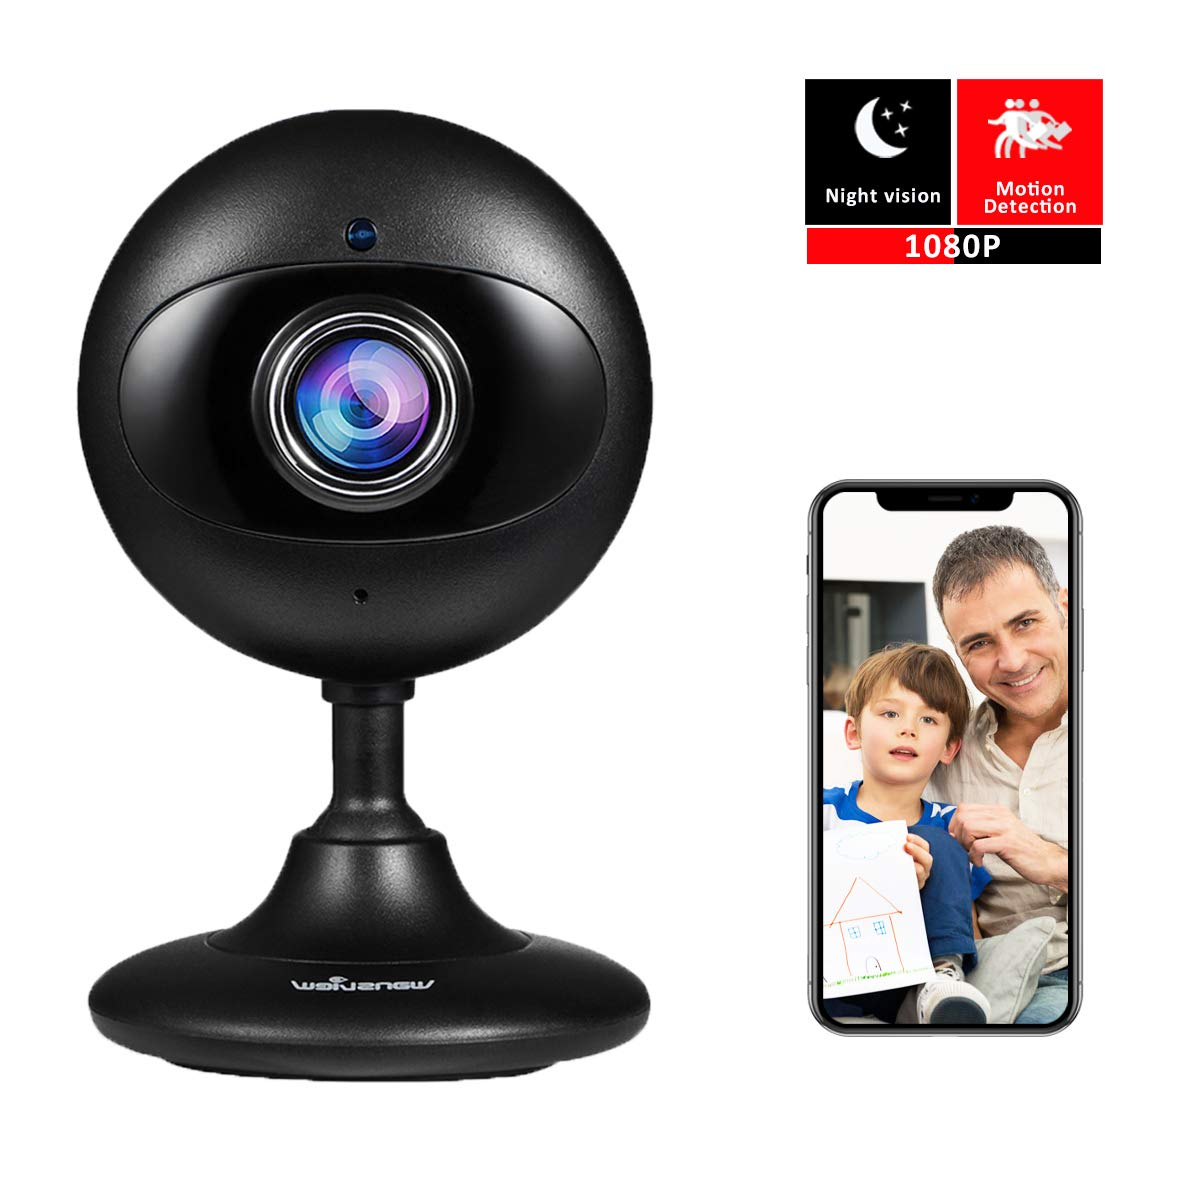 Wansview New Version Home Security IP Camera,1080P Wireless WiFi Indoor Camera for Baby/Elder/Pet/Nanny with Motion Detection and Two-Way Audio, with SD Card Slot (Black) by Wansview